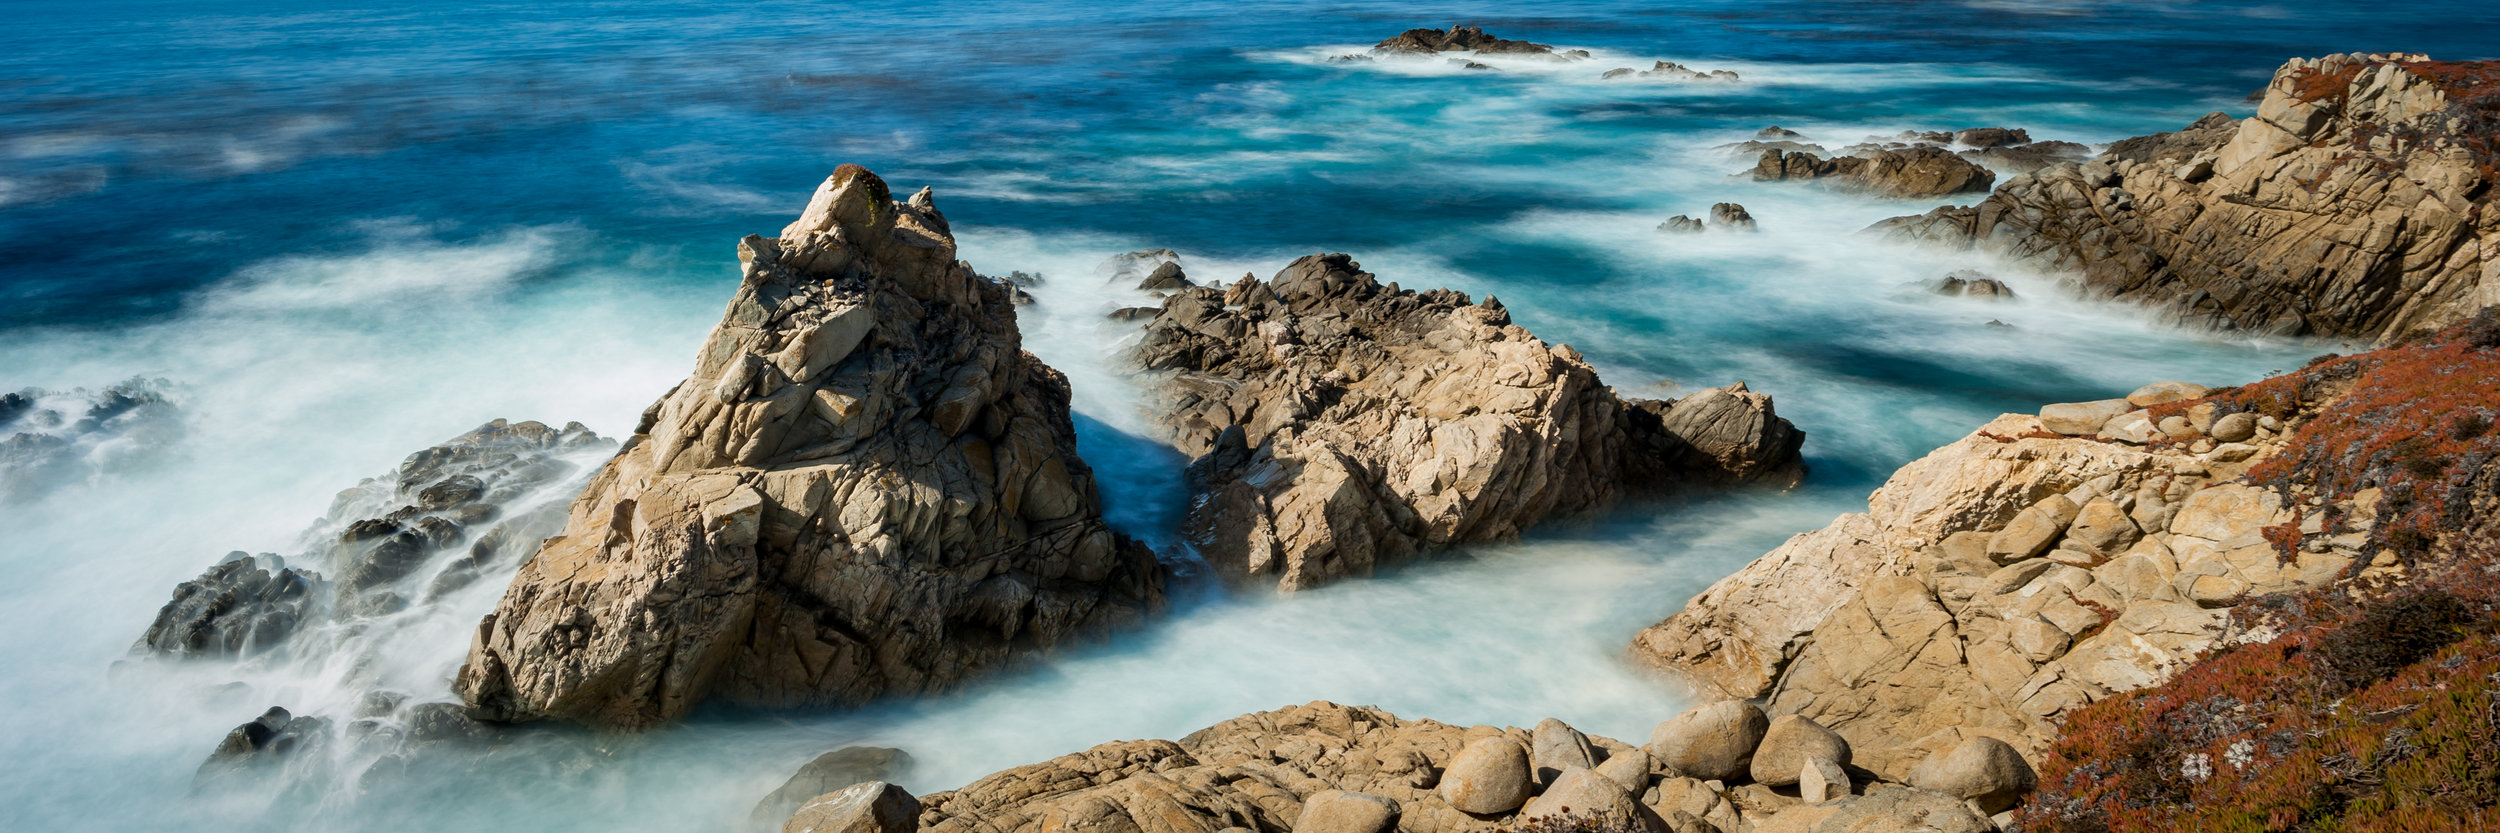 Big Sur Rocks  || Panorama, 15s exposure.